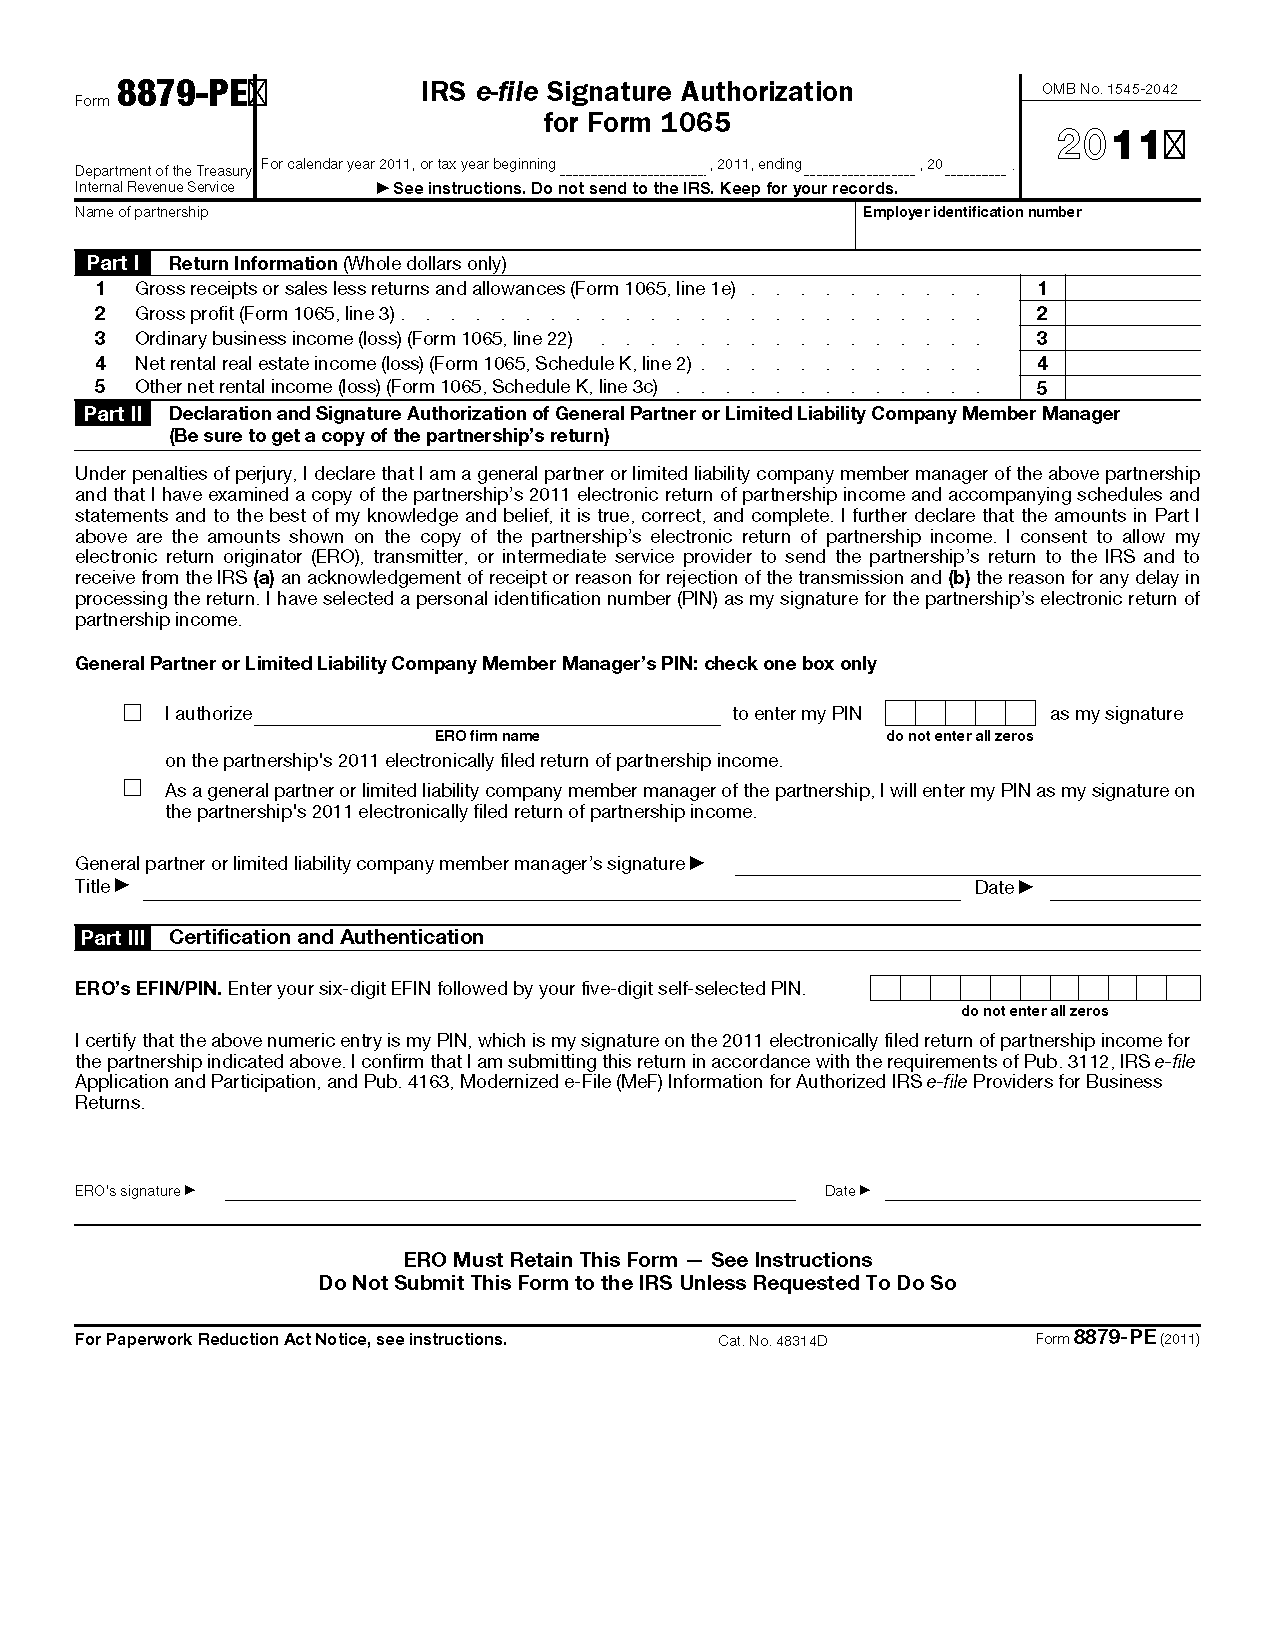 irs form 8879 pe - Mersn.proforum.co